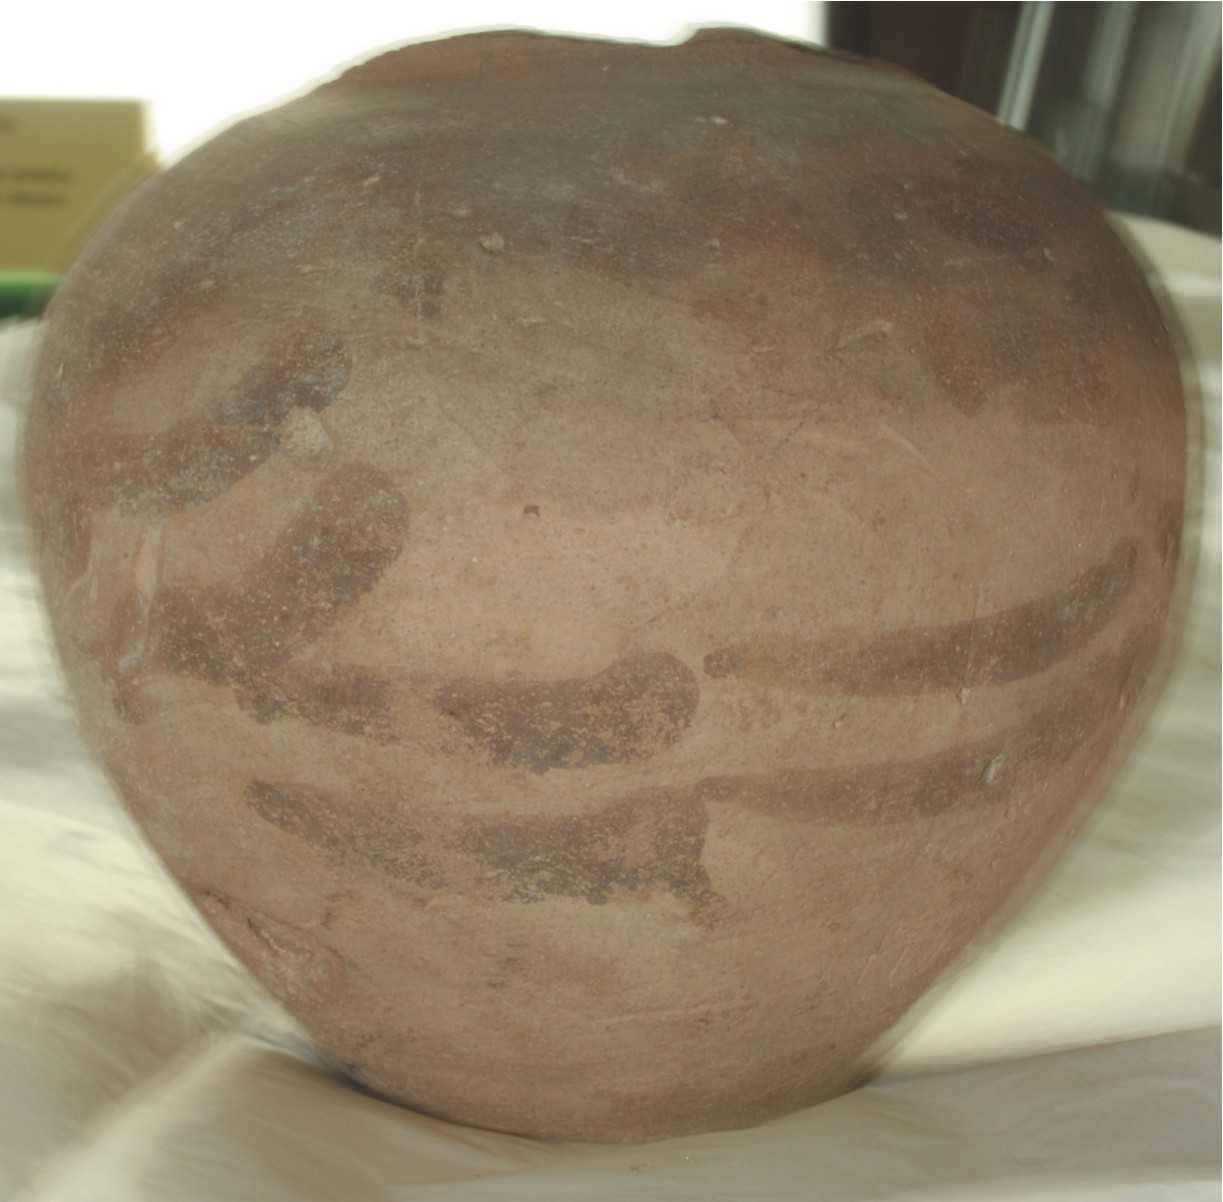 Image for: Pottery vessel